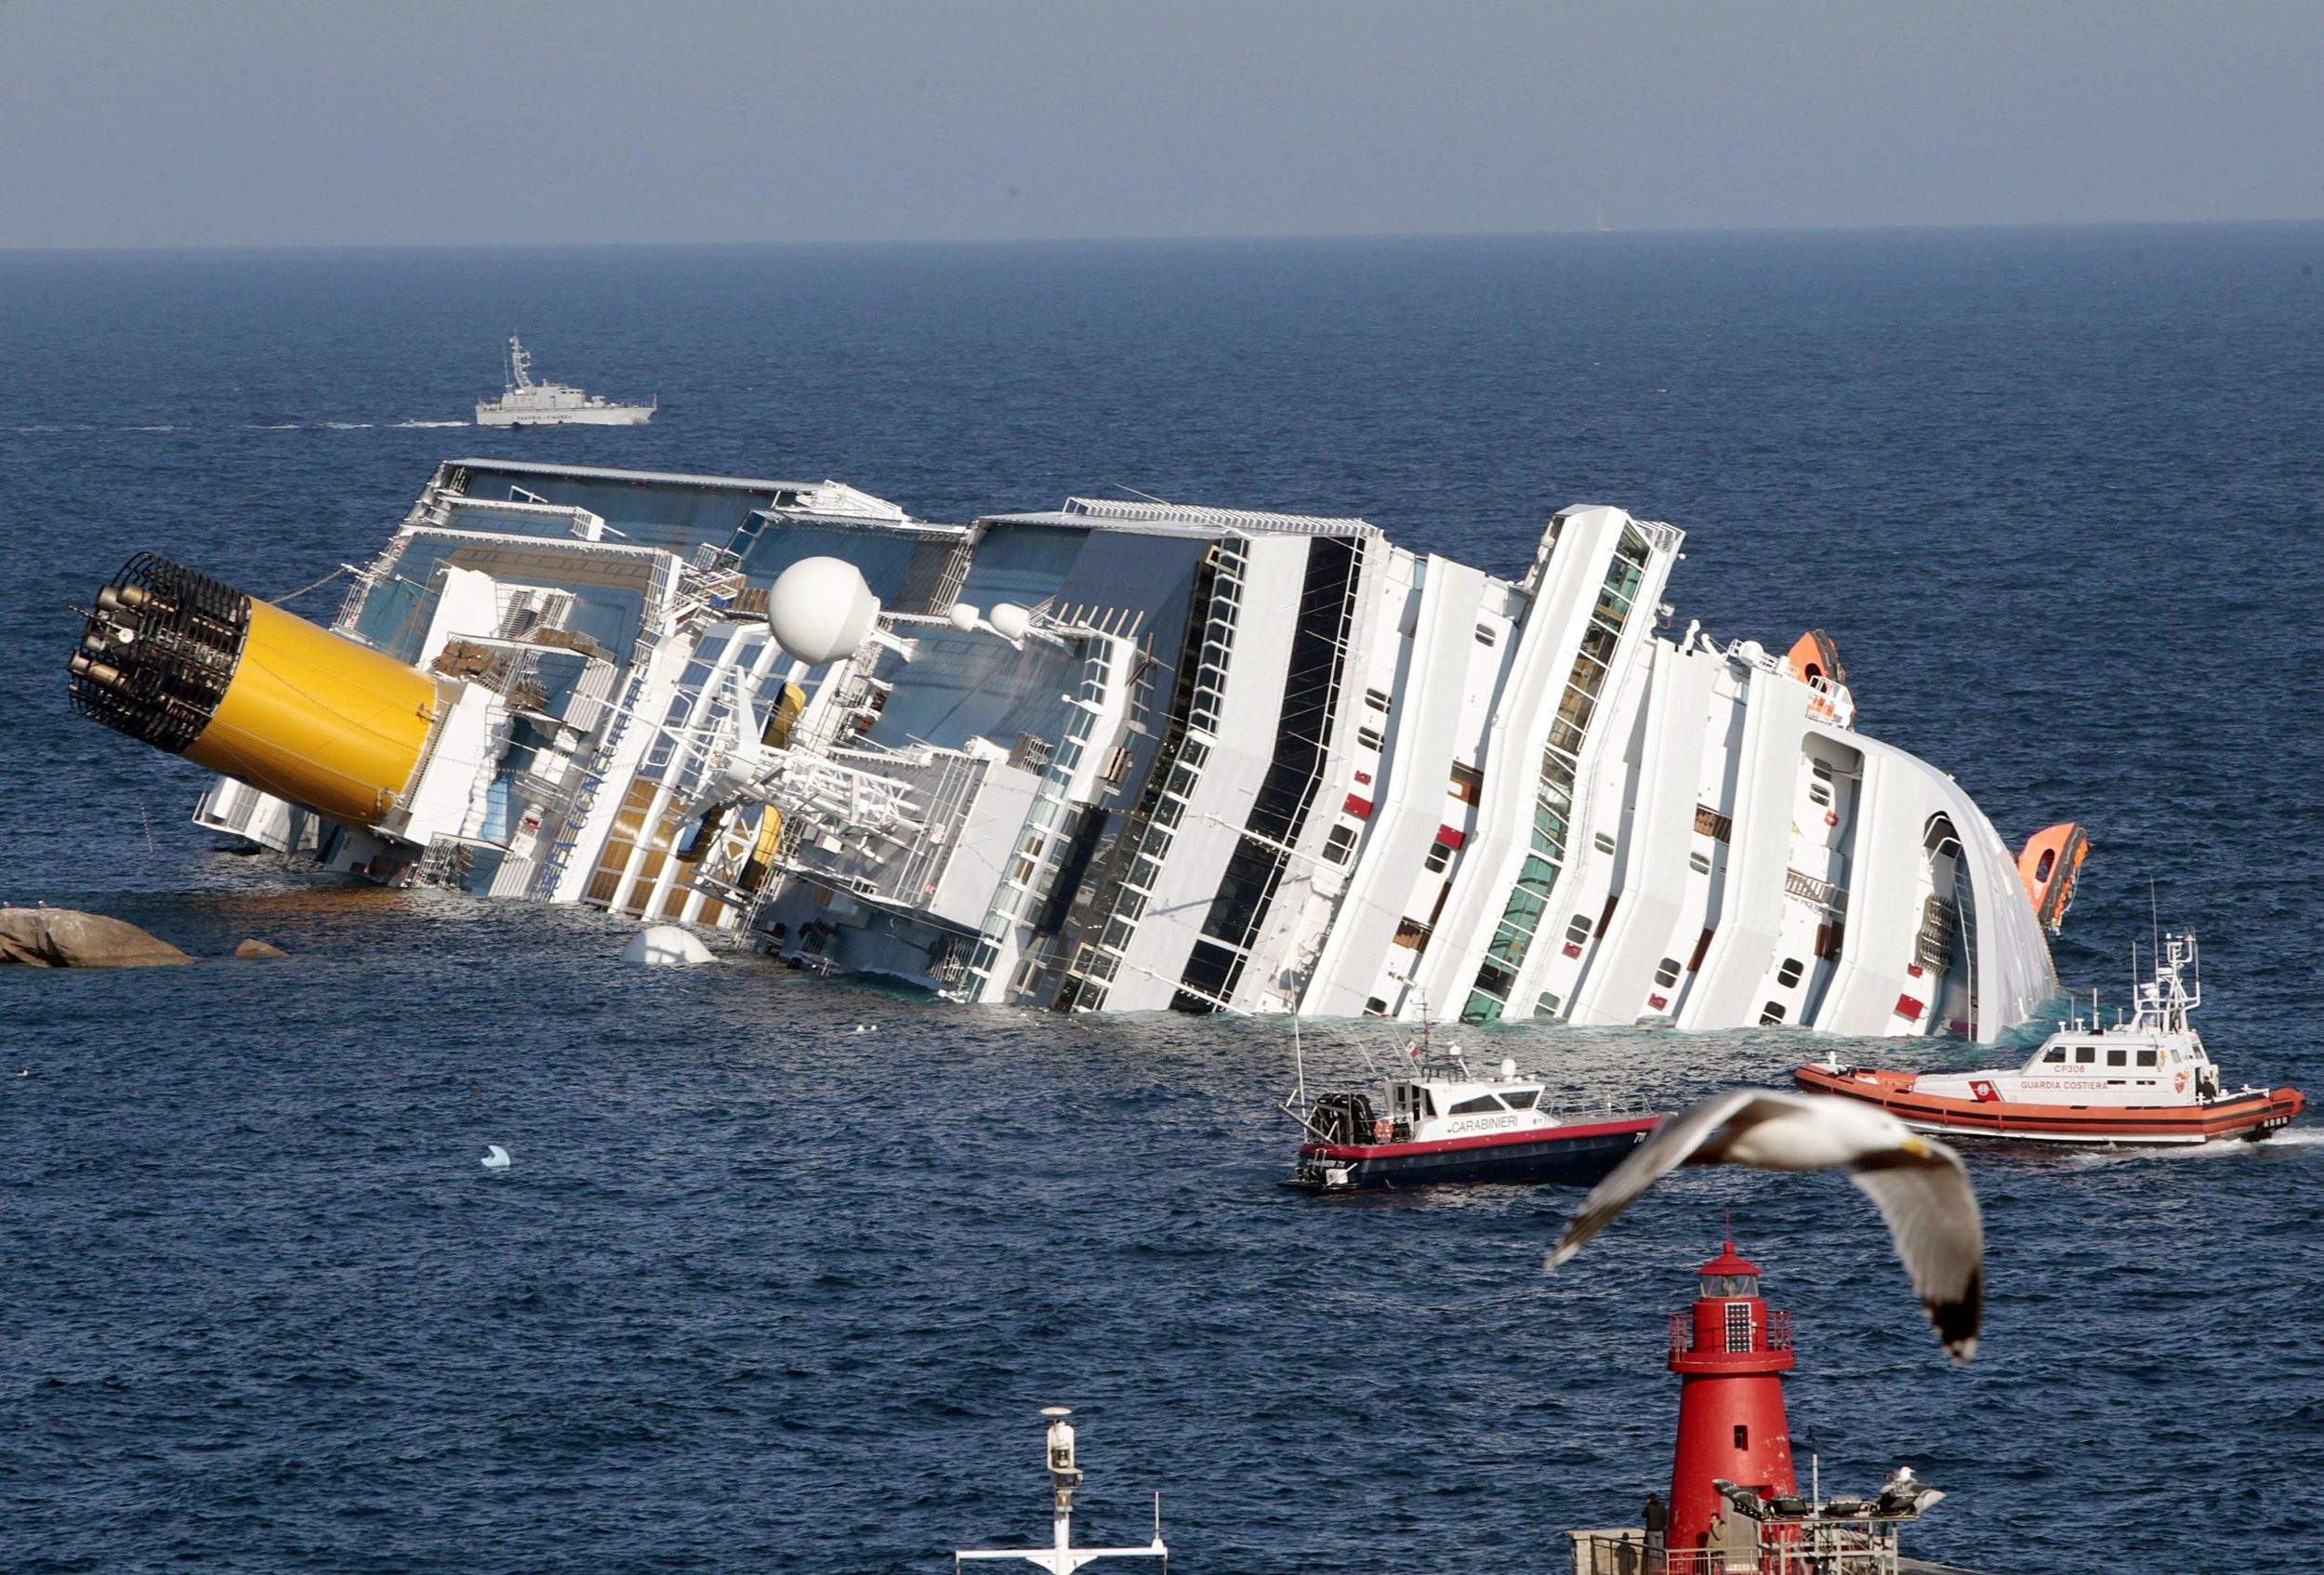 Chaos Fear Rules After Cruise Ship Runs Aground